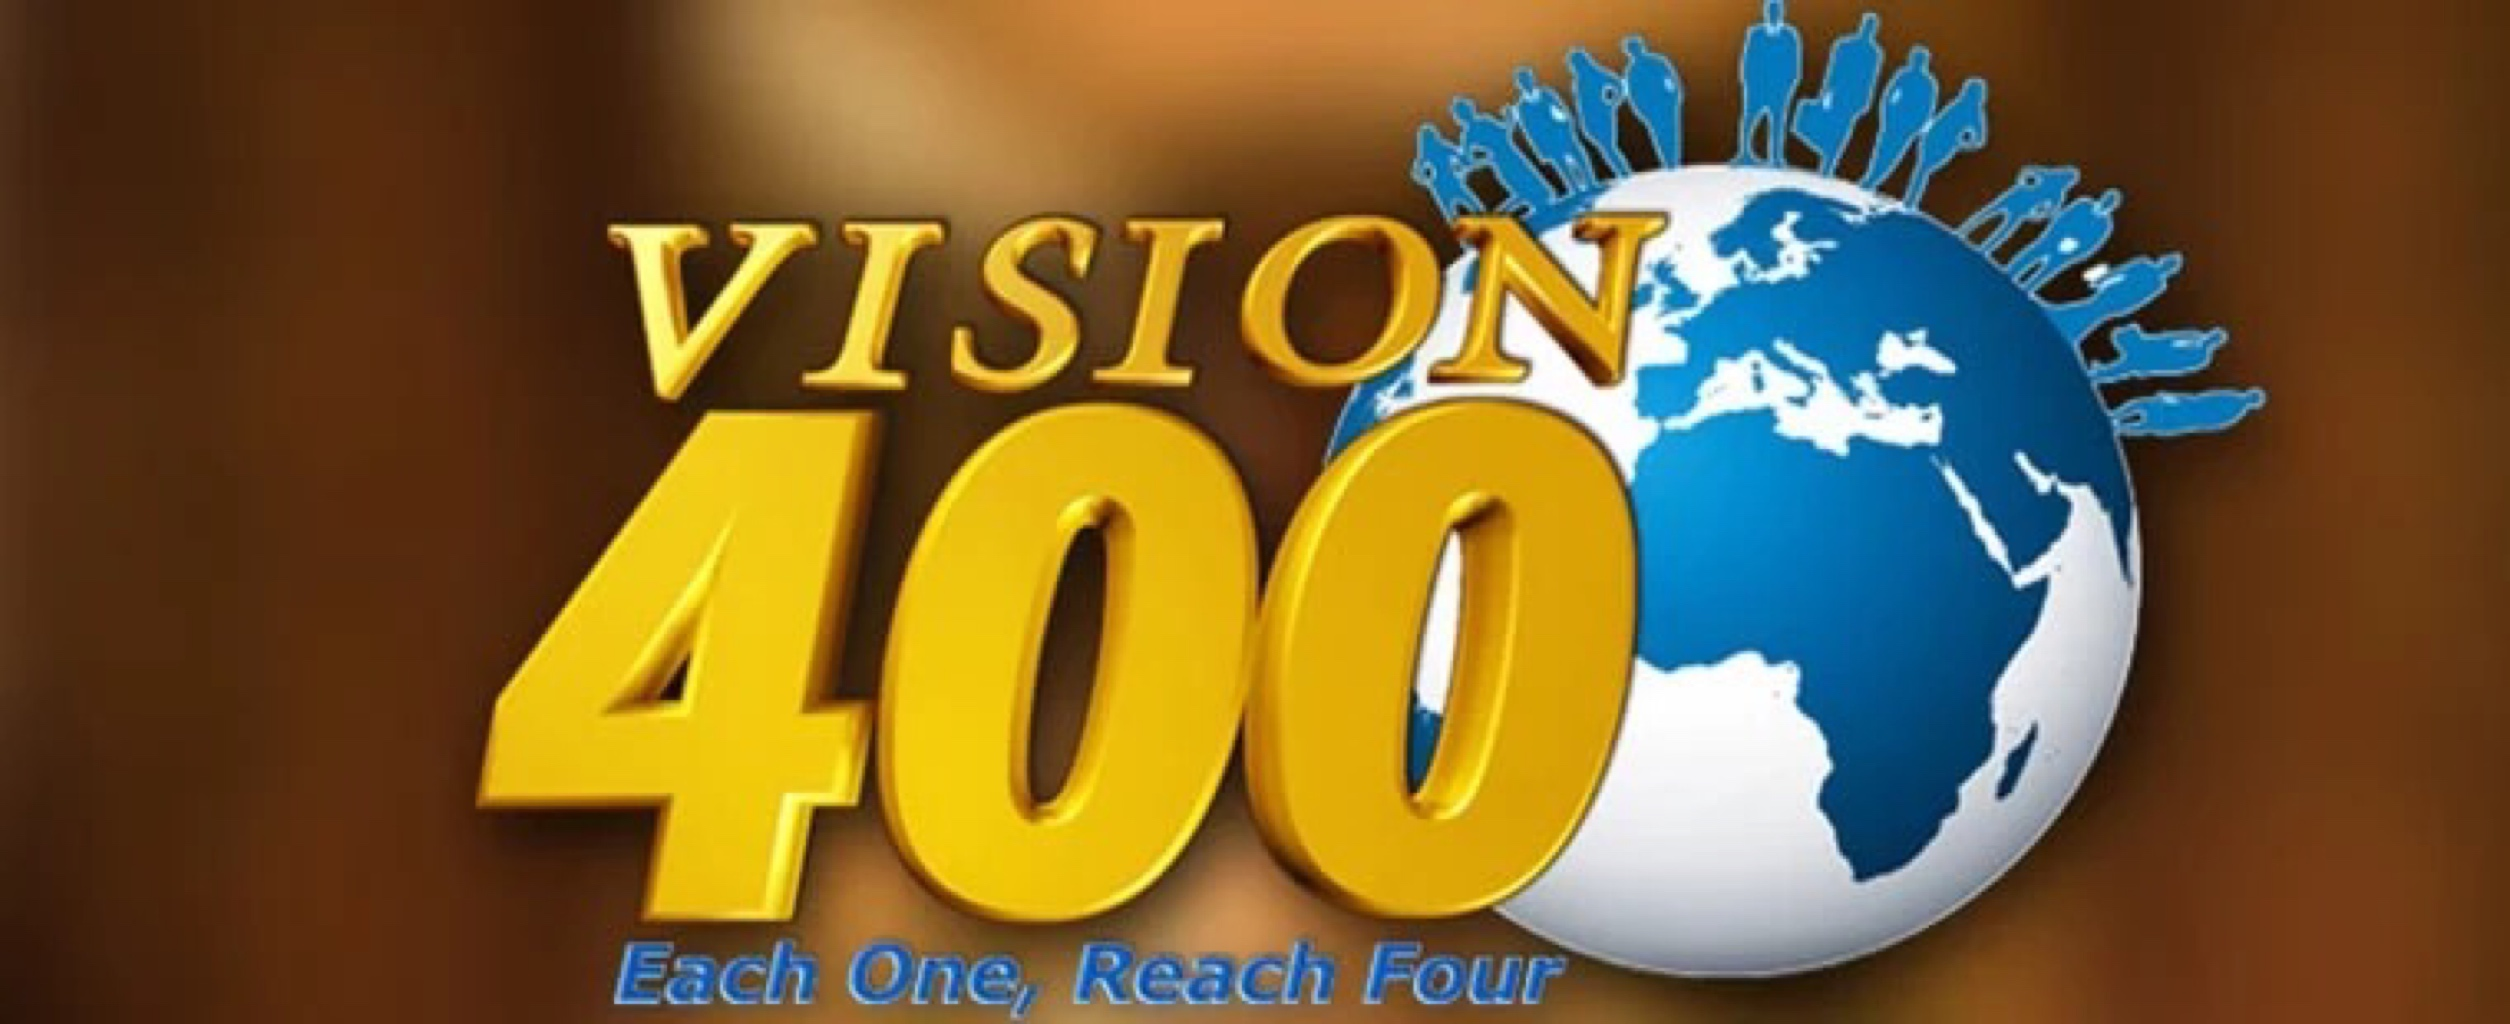 #vision400......till d whole world is